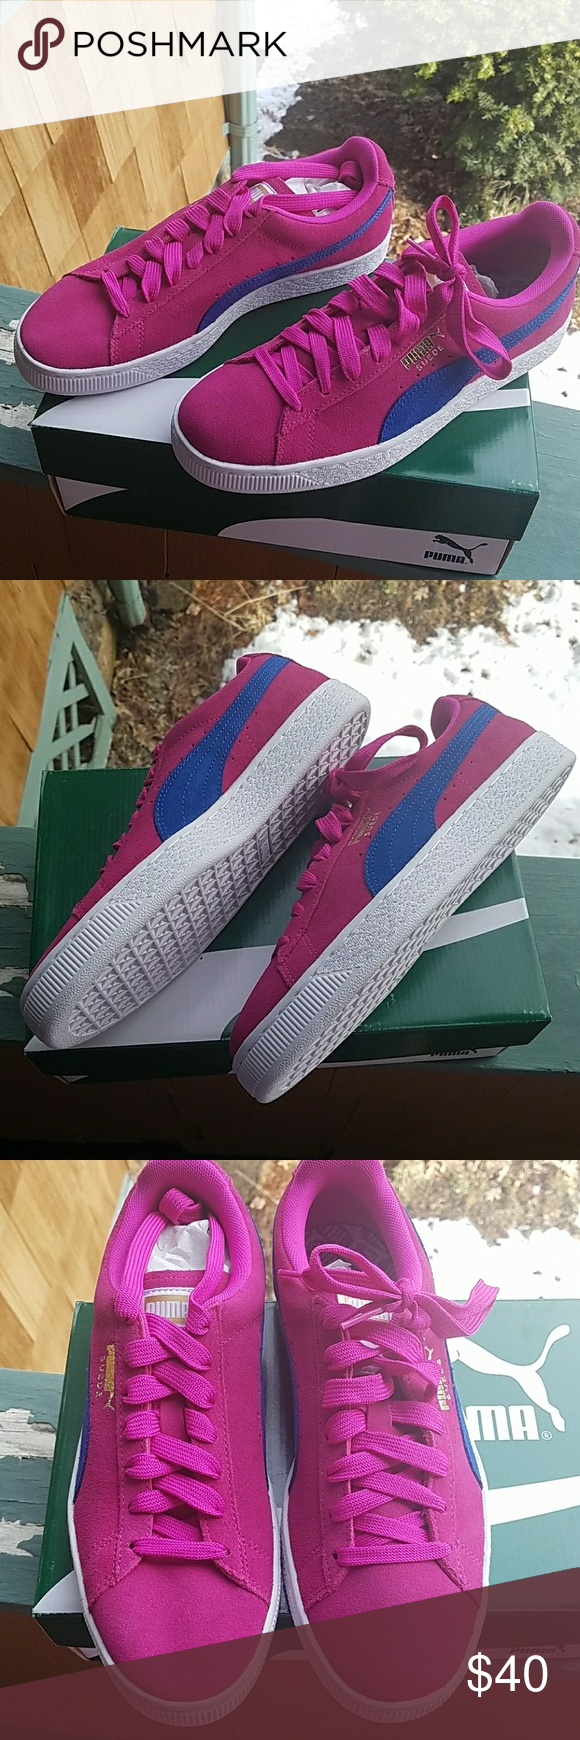 2cd53f6a98e7e3 Brand new Puma hot pink suede sneakers Brand-new in-the-box women s